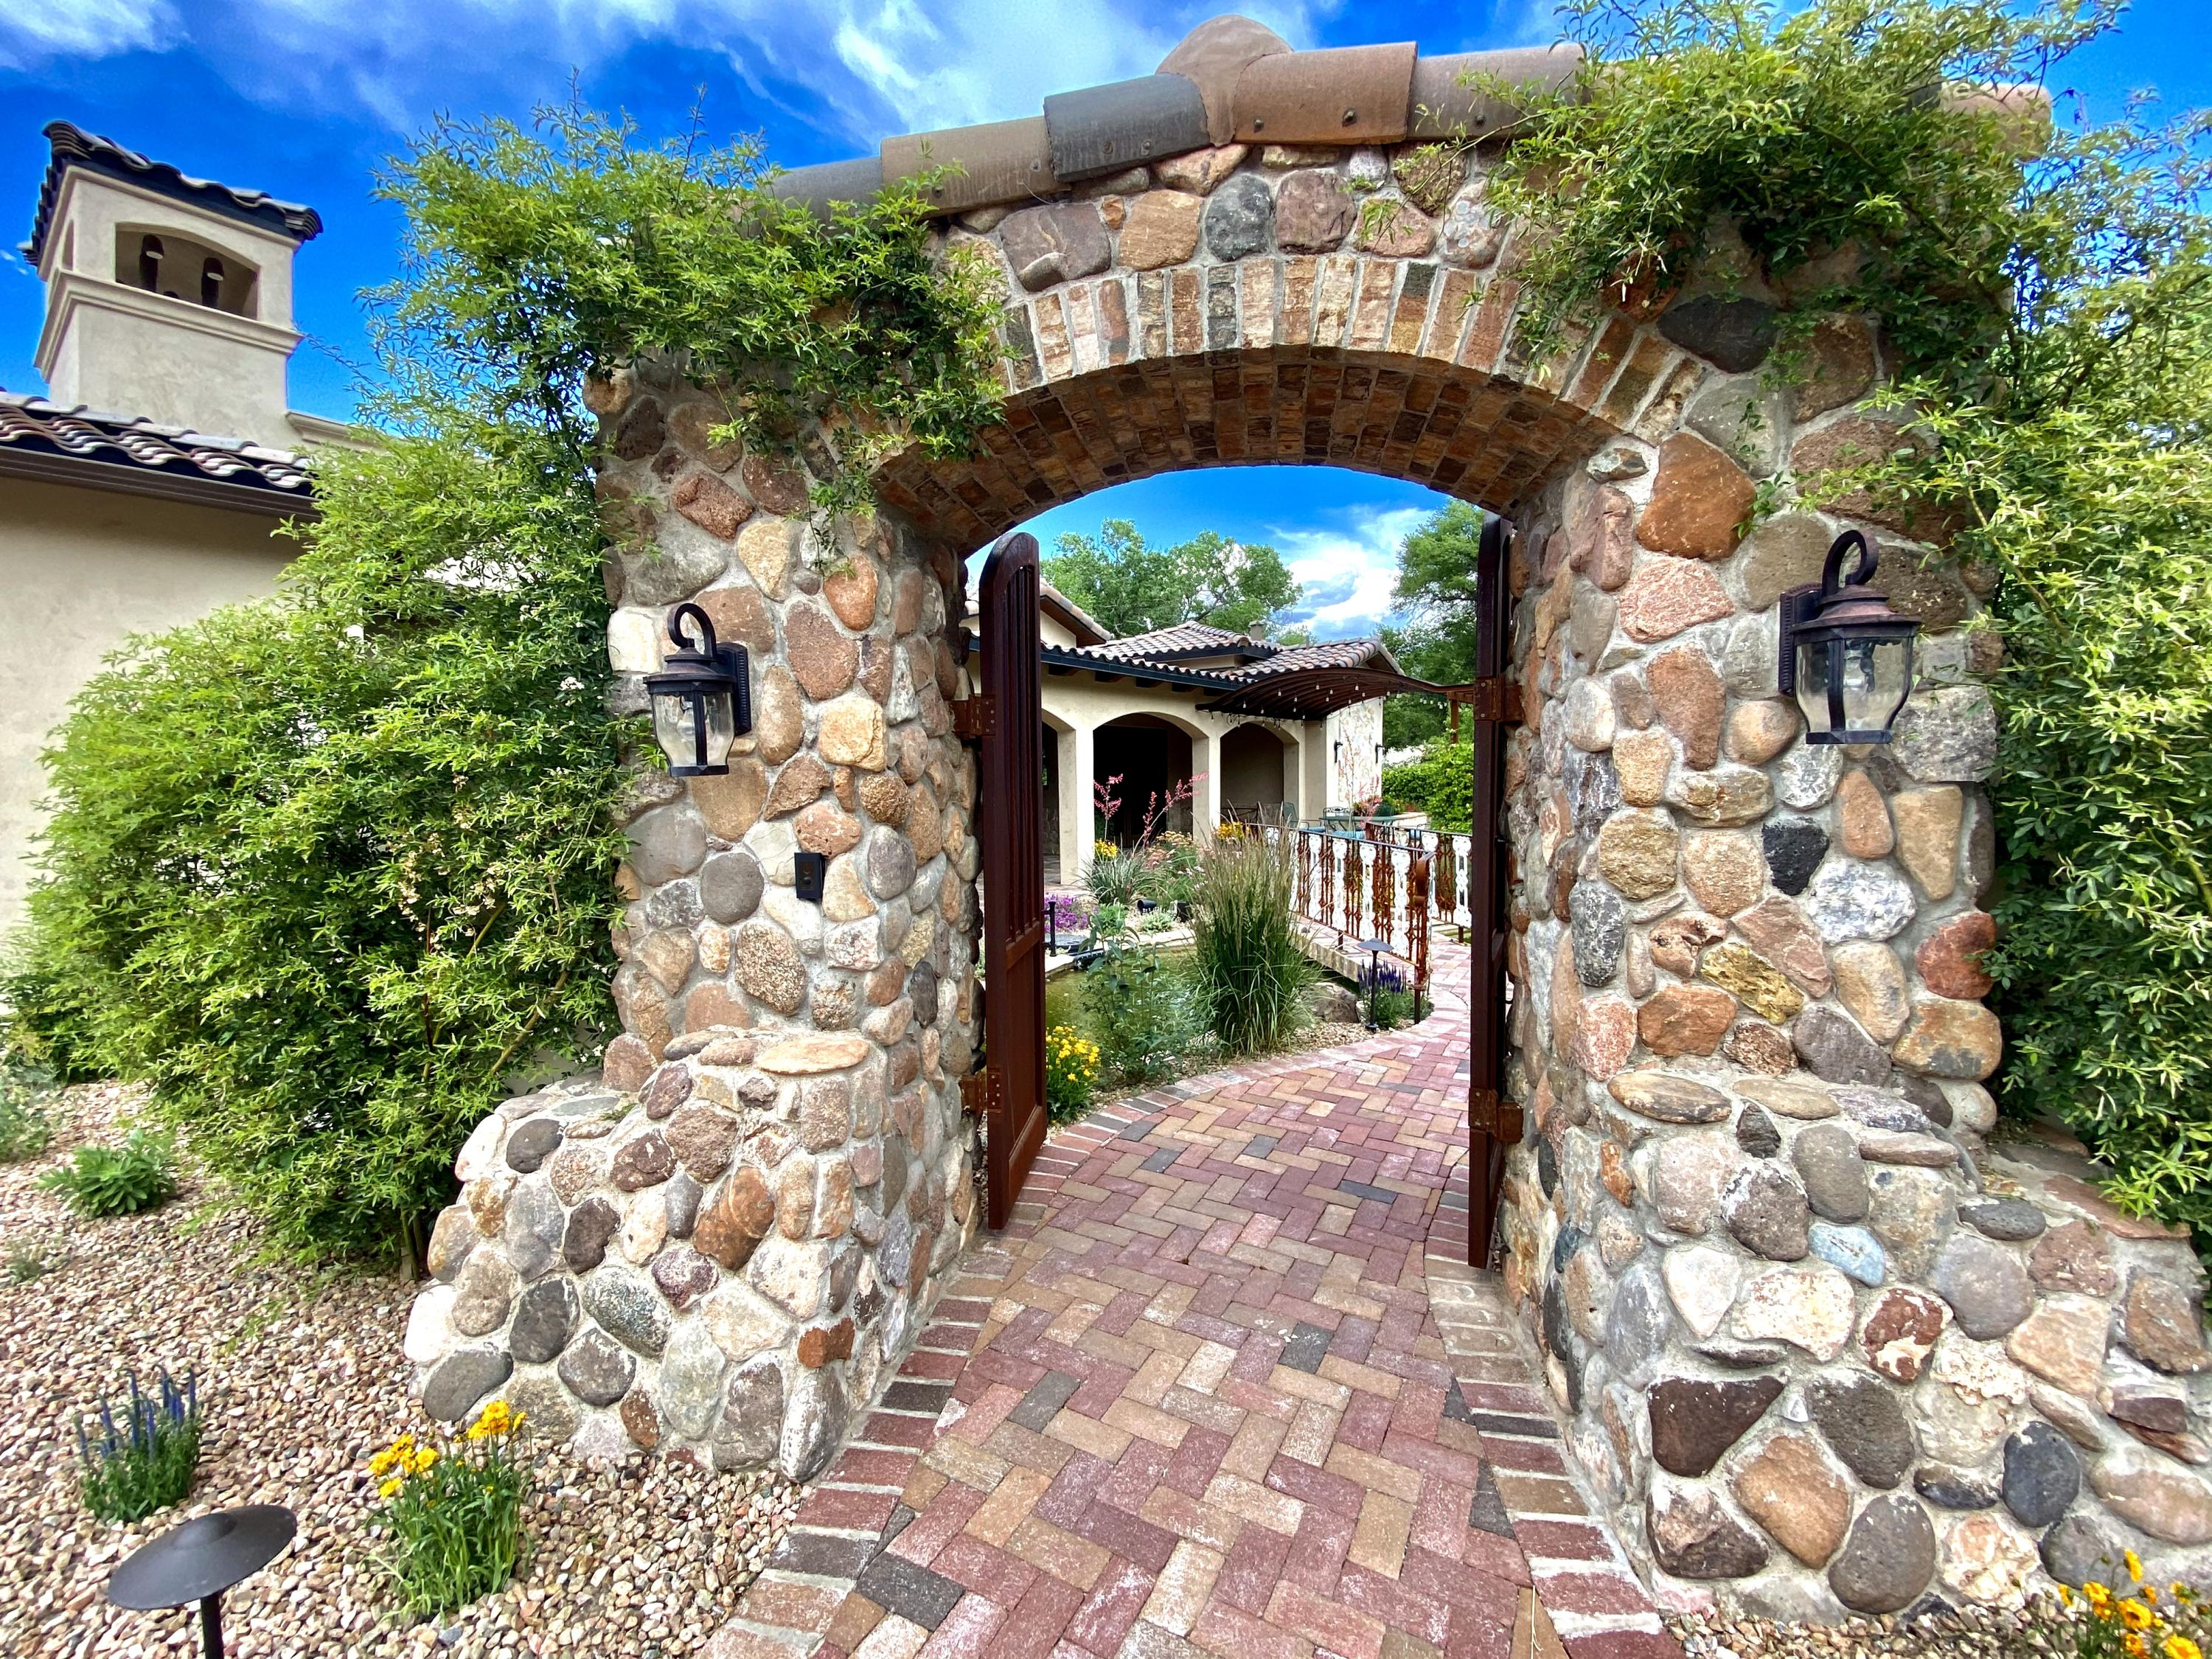 909 TERRA BELLA COURT NW, ALBUQUERQUE, NM 87114